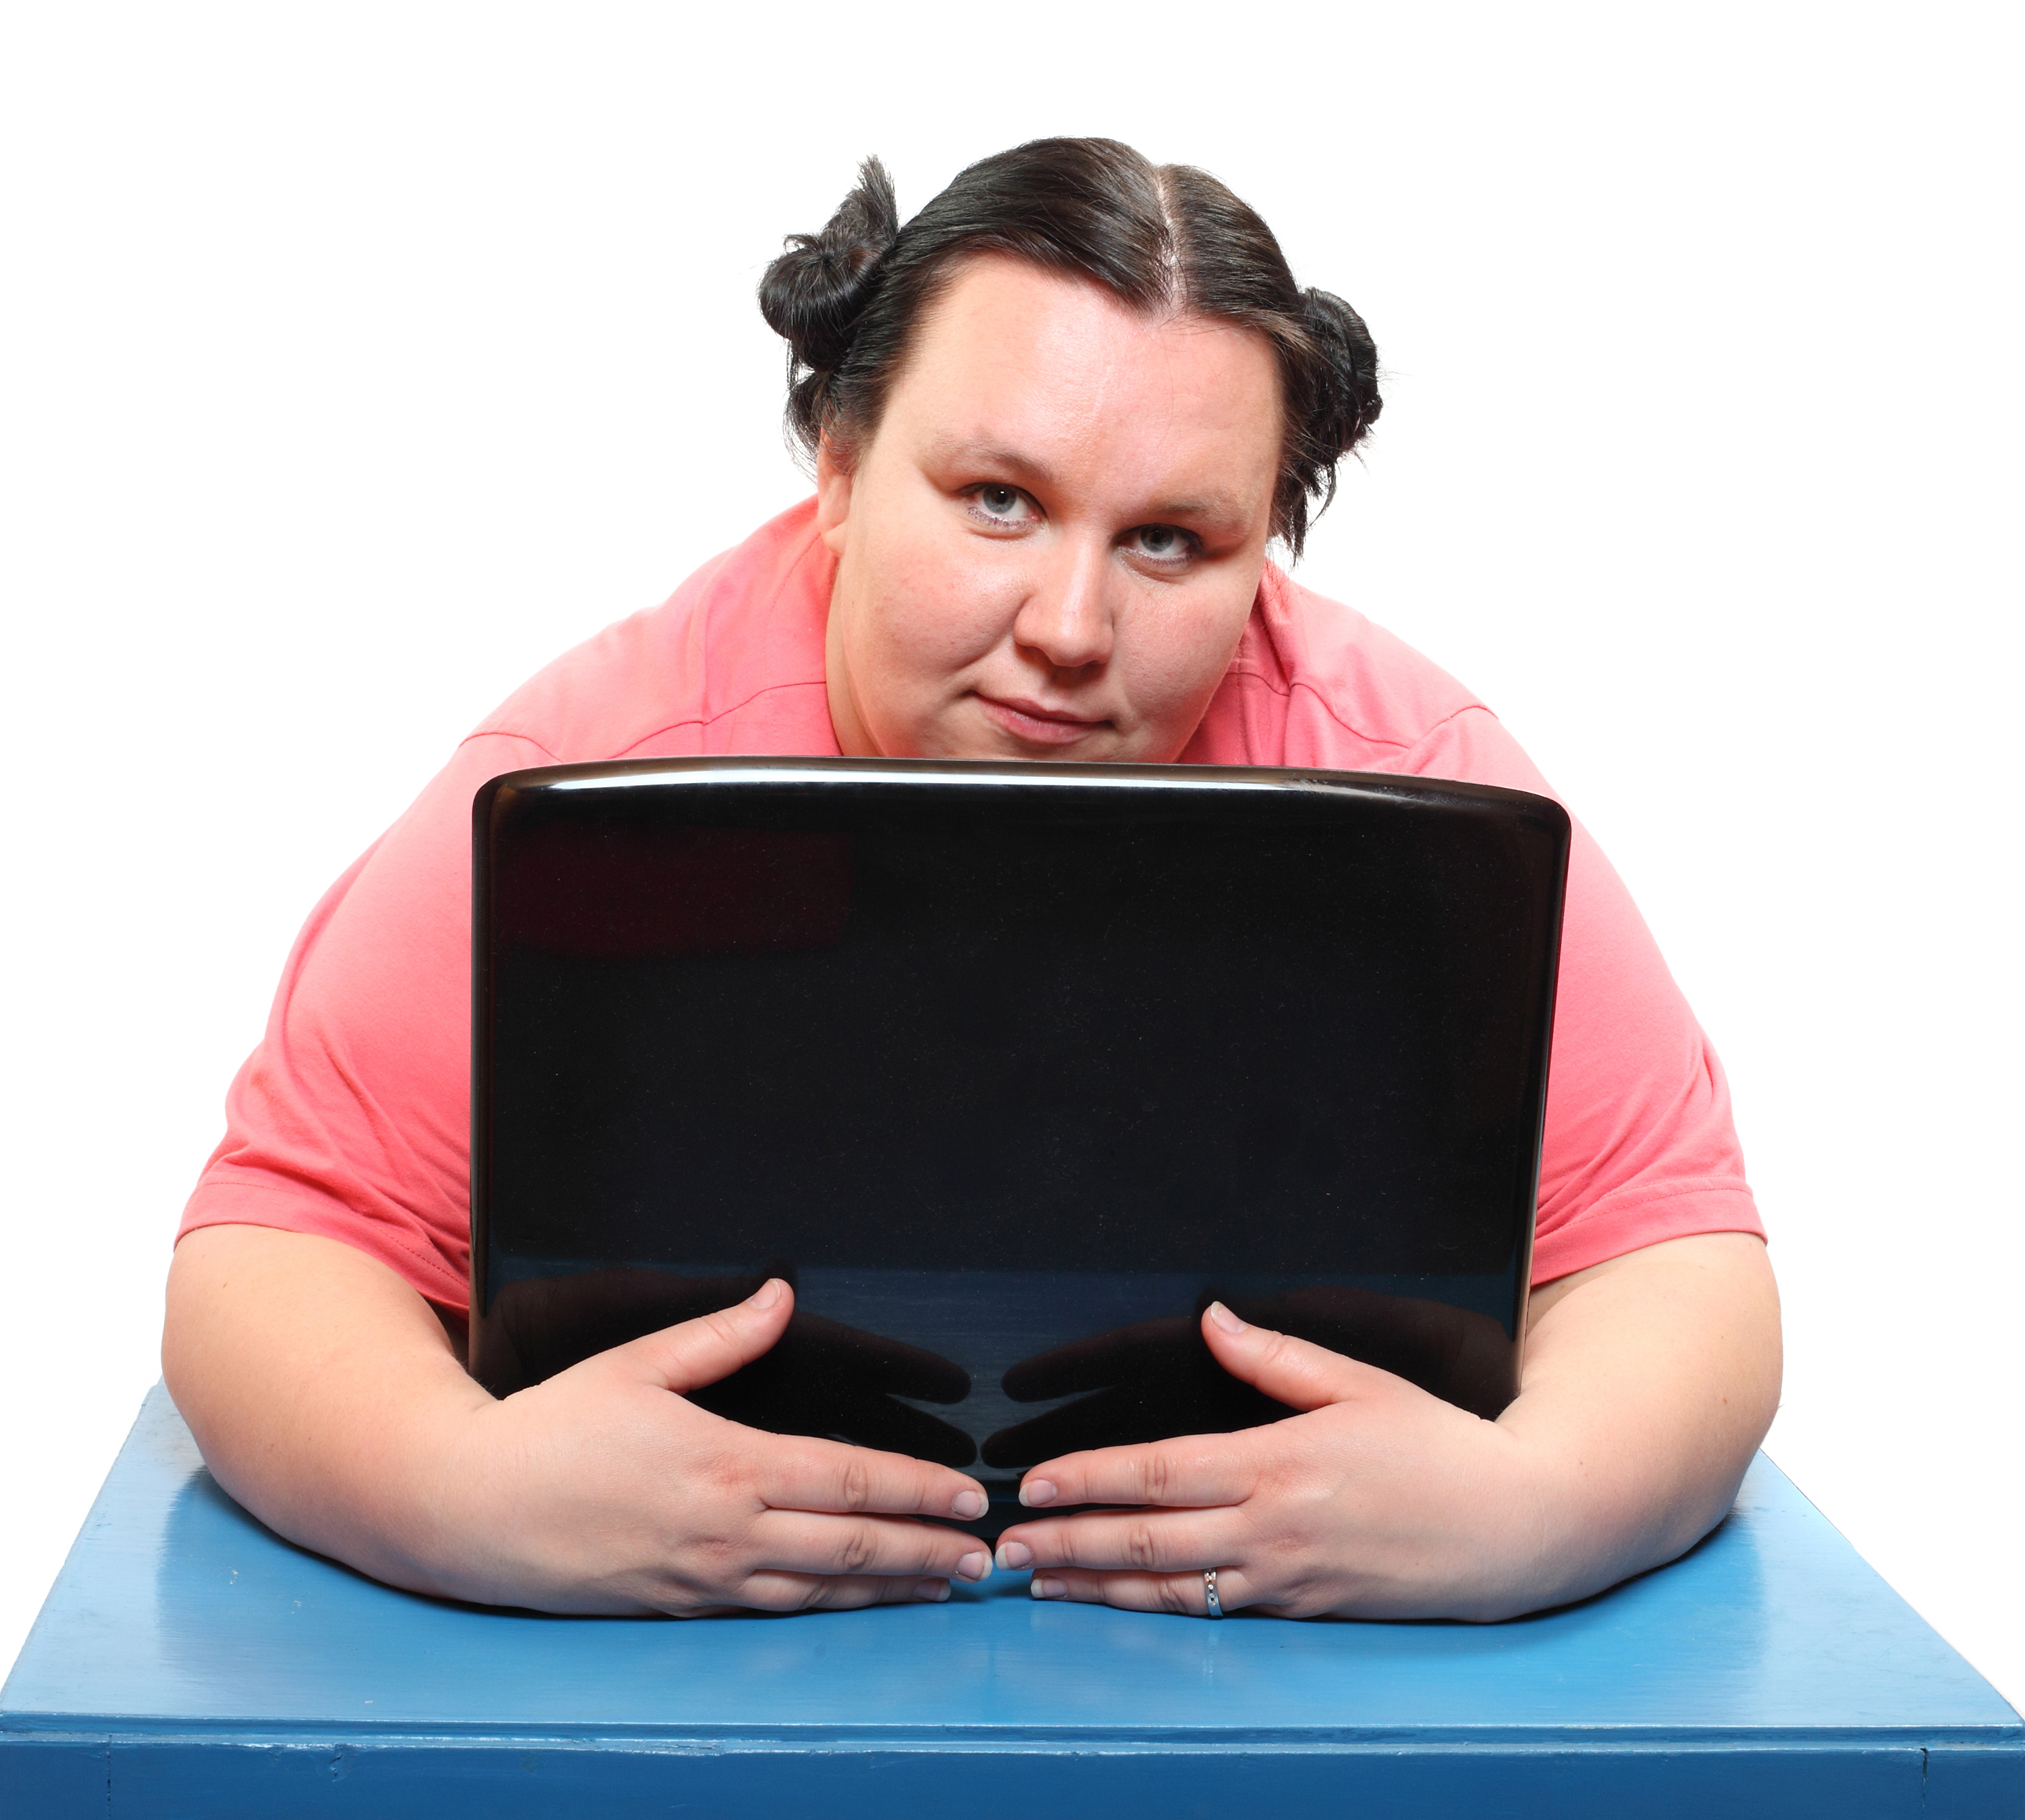 Obesity In The Workplace: Overweight Employees Are Less ...